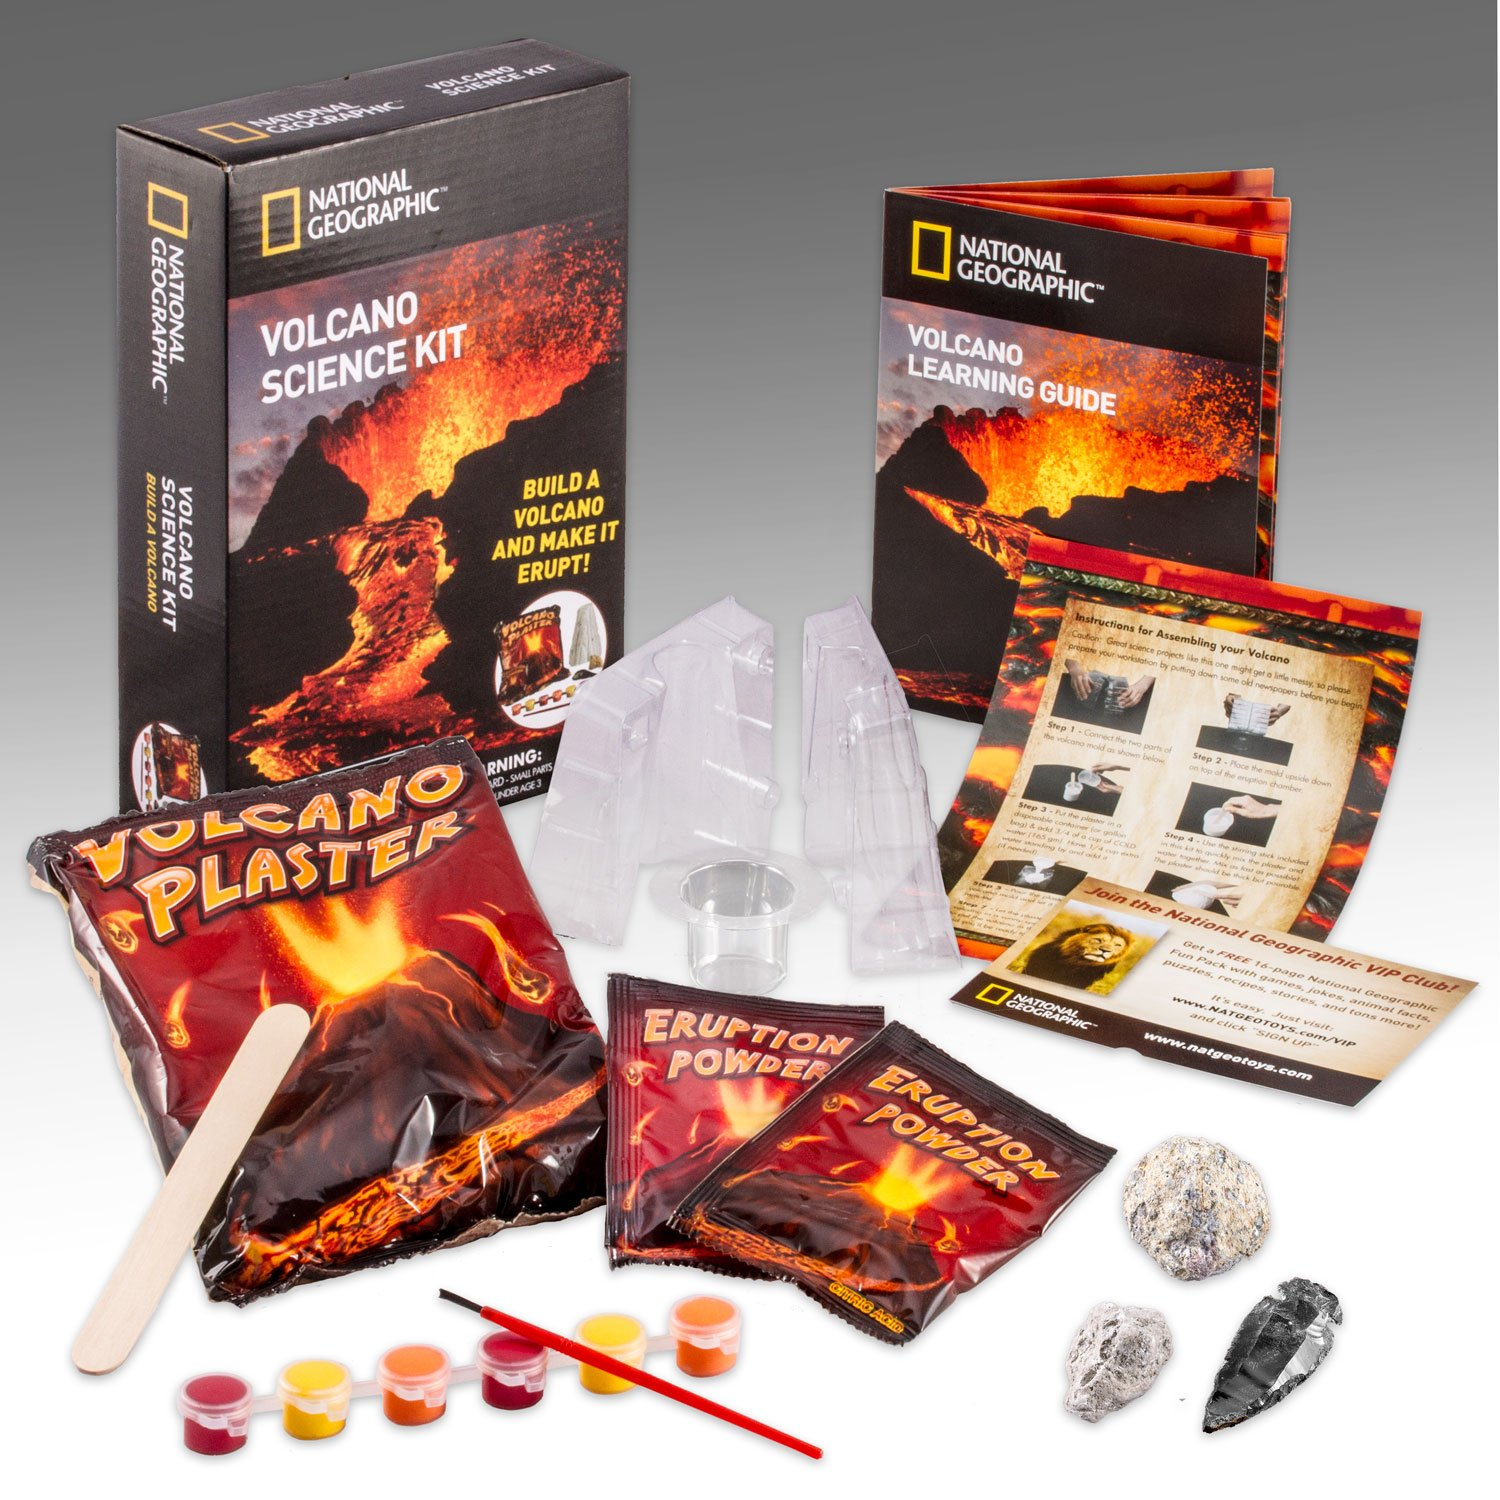 Amazon NATIONAL GEOGRAPHIC Volcano Science Kit Toys & Games